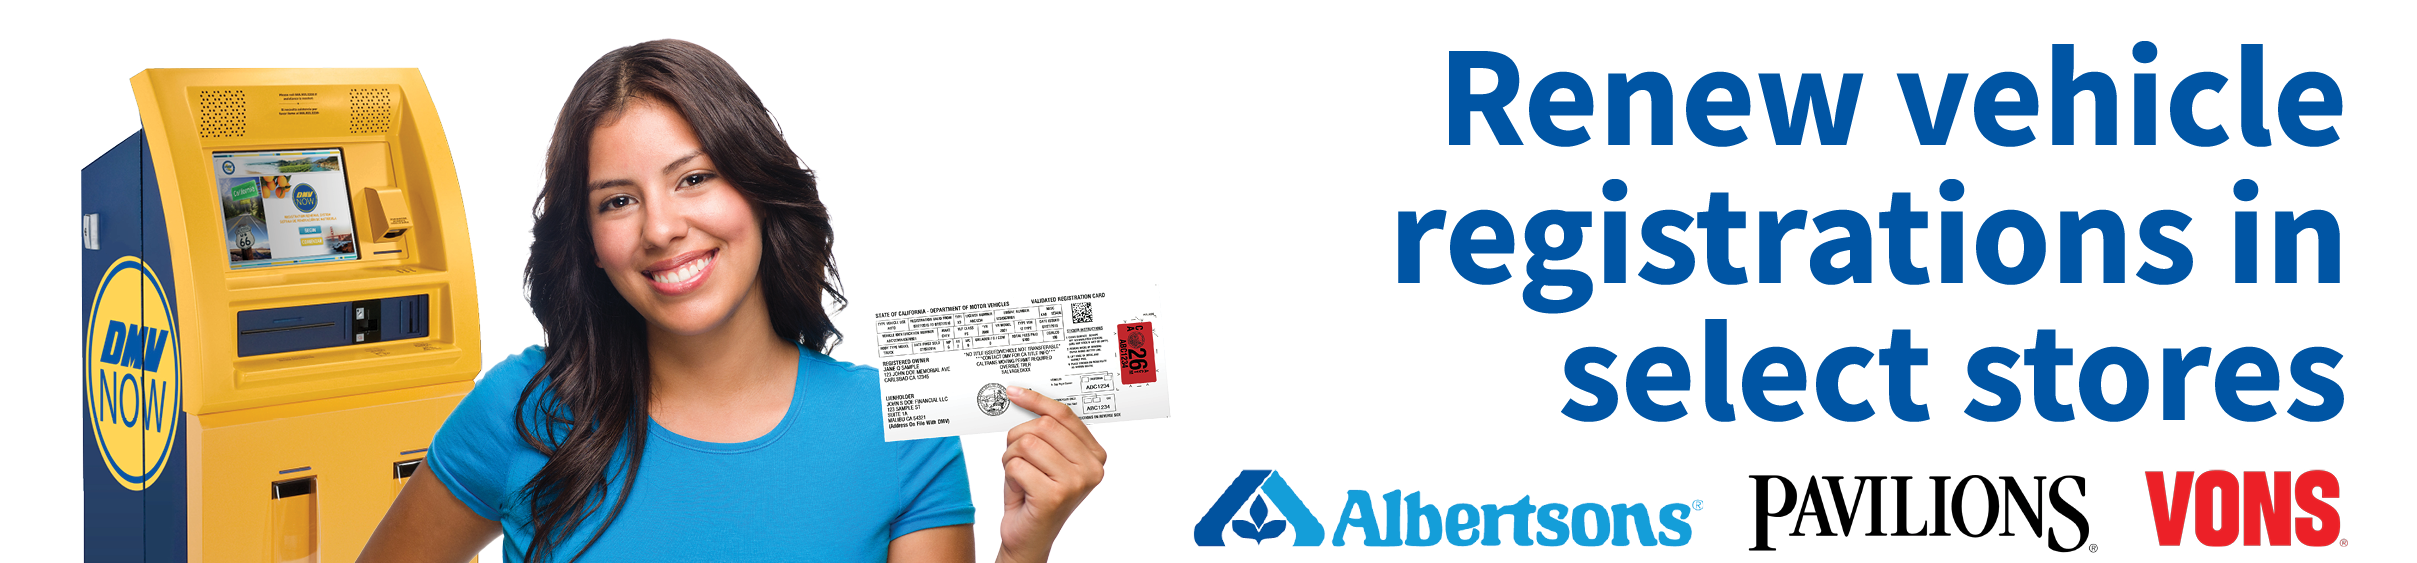 Renew vehicle registrations in select Albertsons, Pavilions, and Vons locations